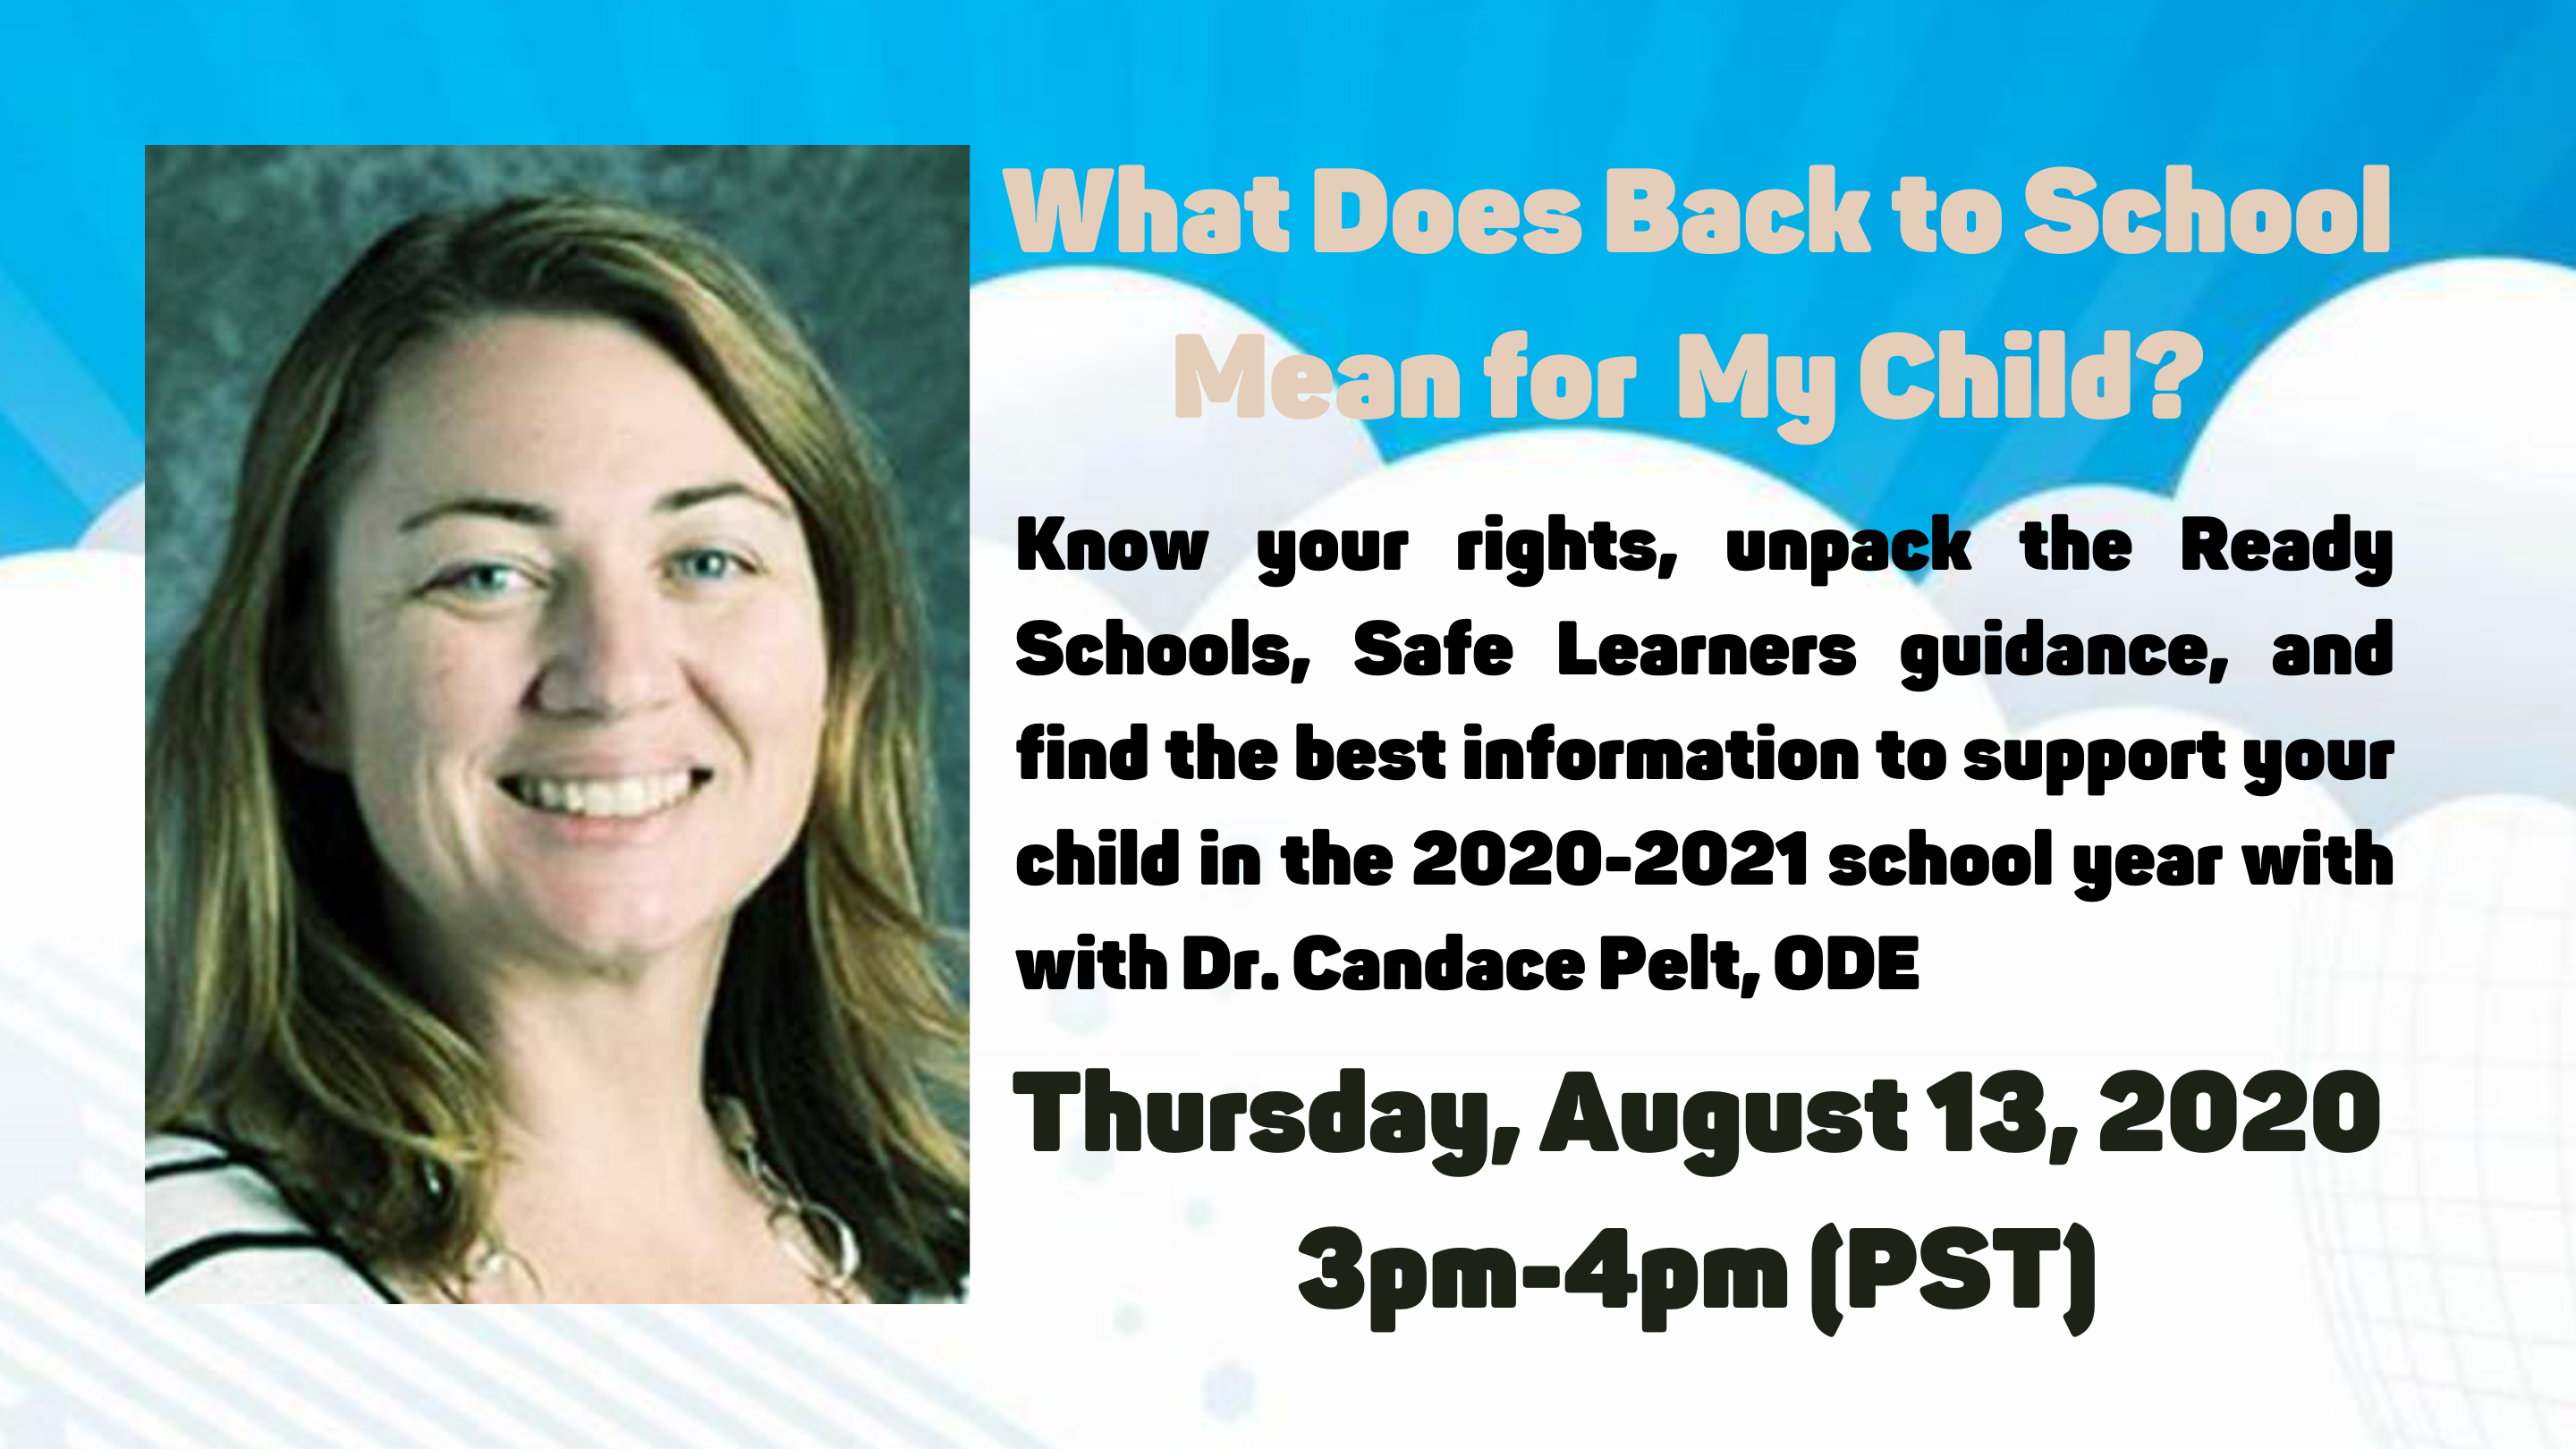 What Does Back to School Mean for My Child?